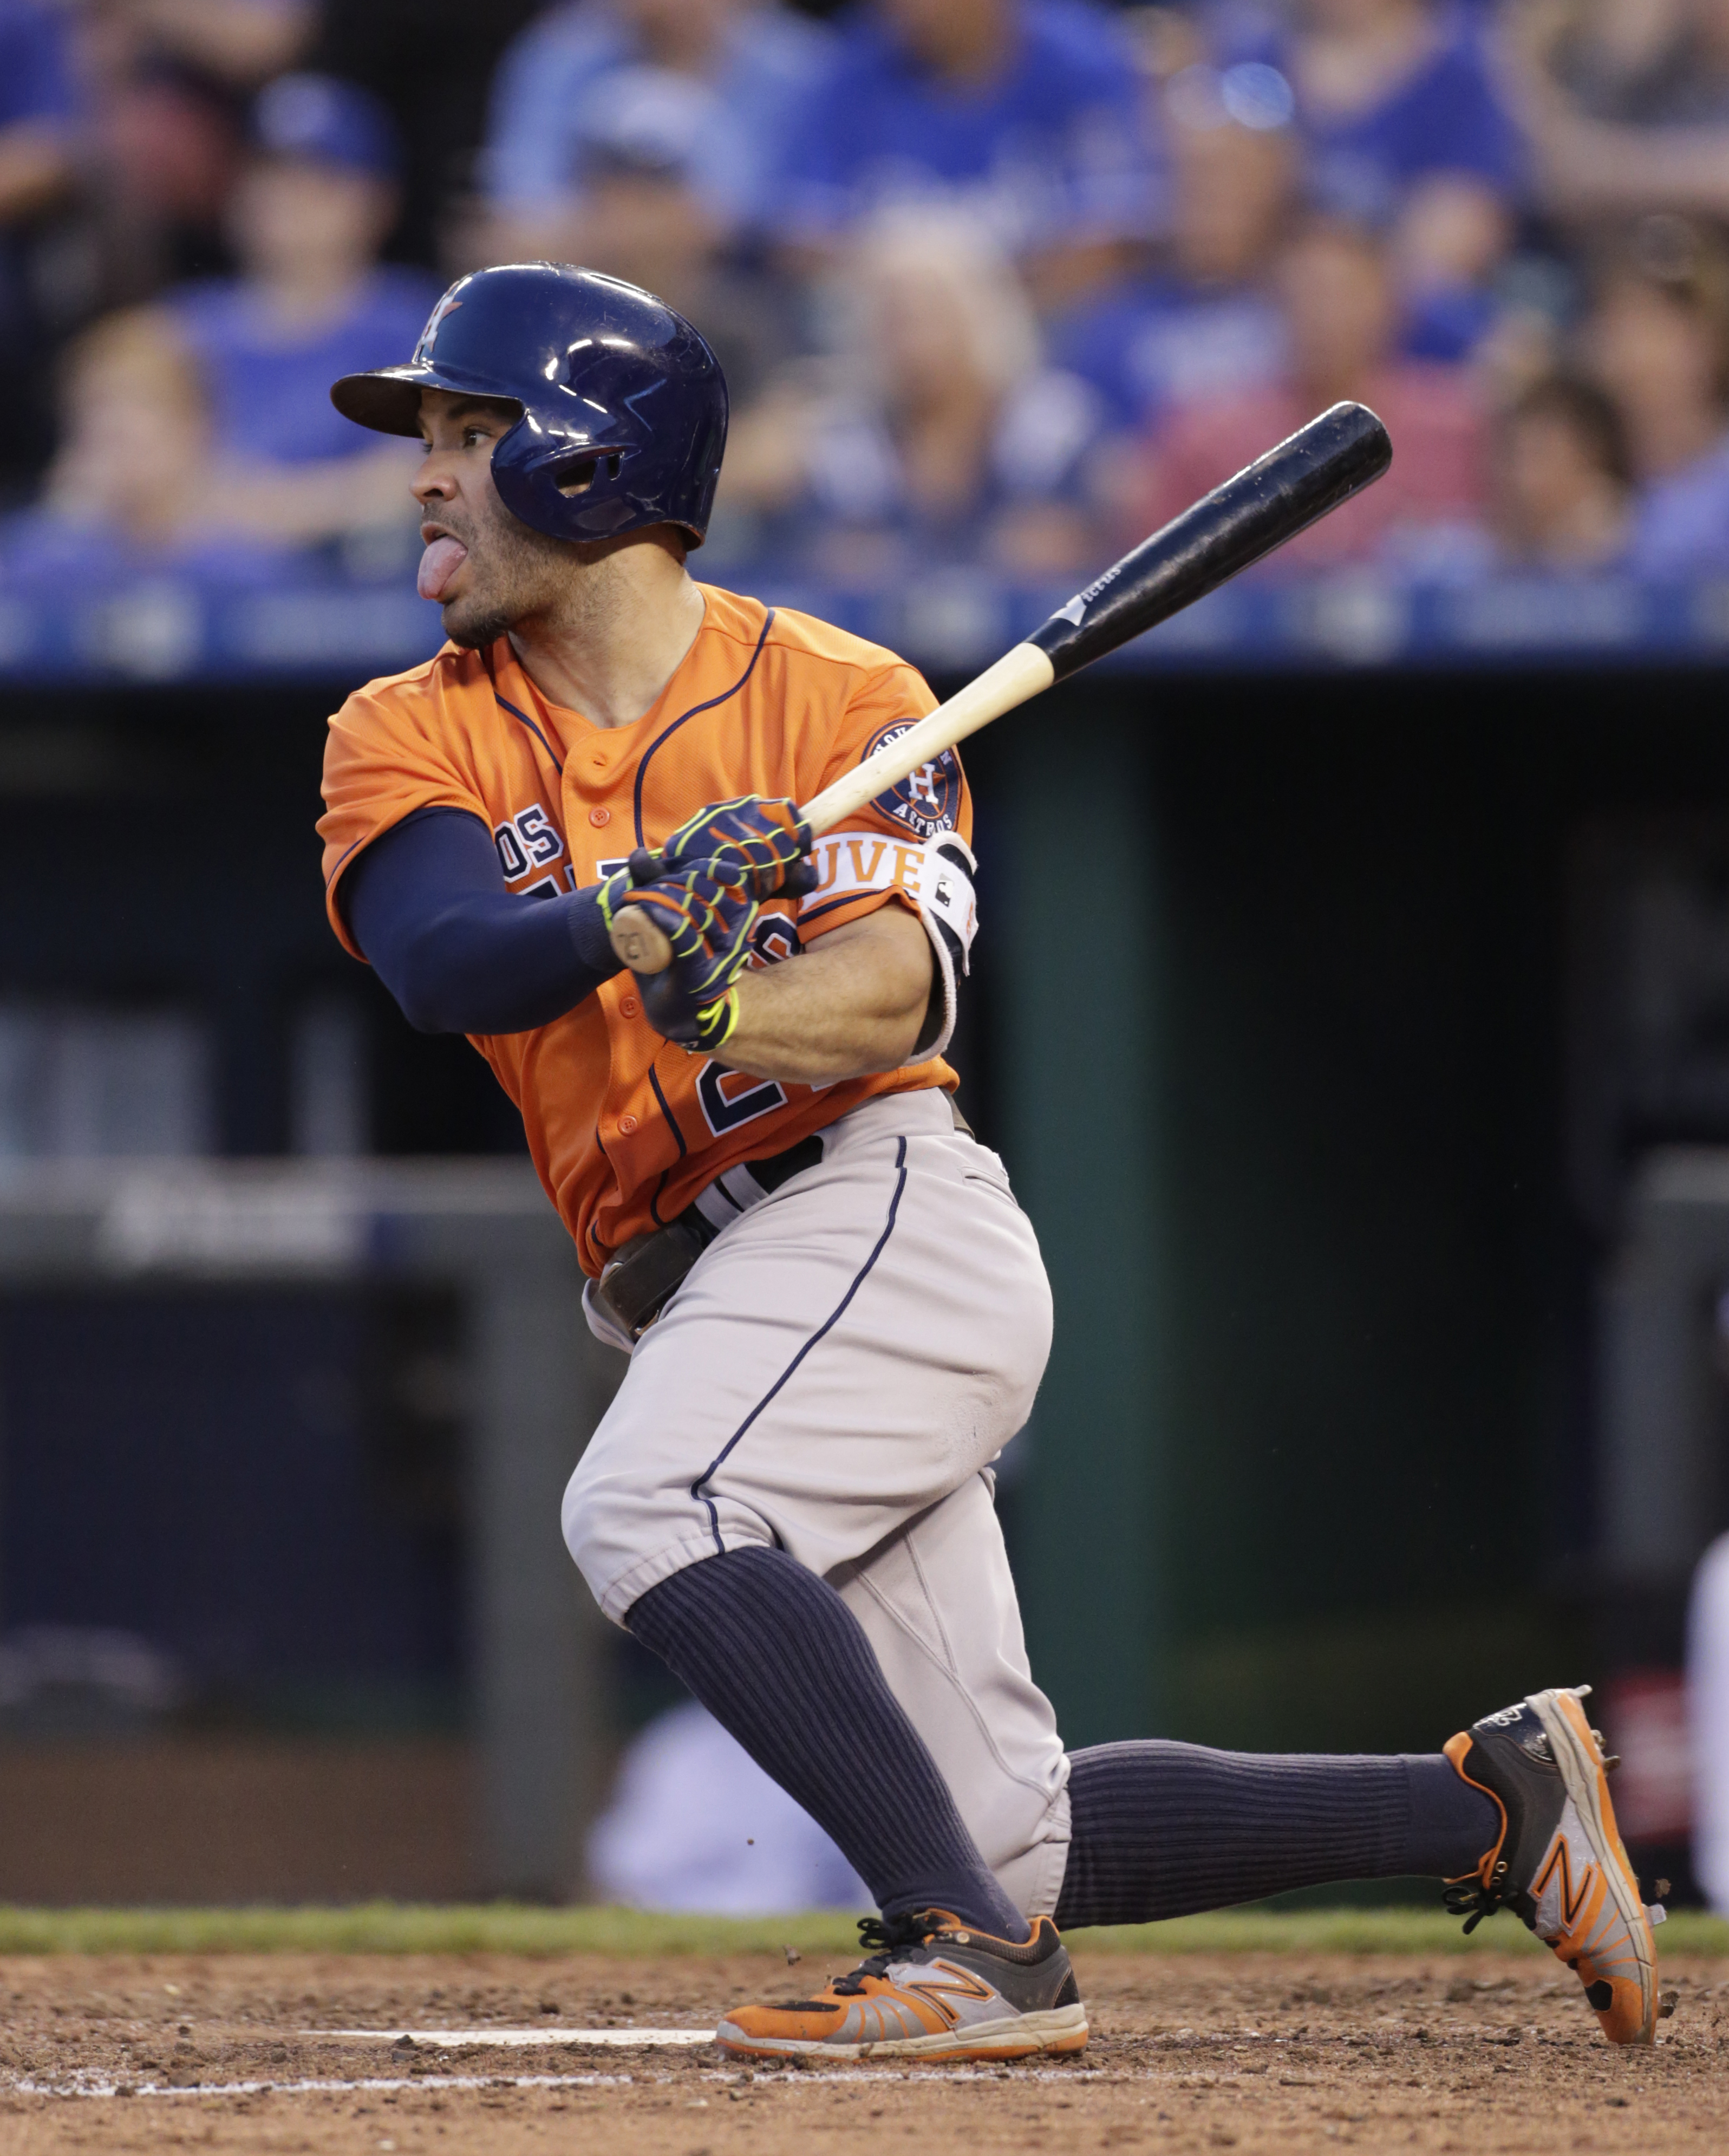 Houston Astros Jose Altuve hits a double in the sixth inning of a baseball game against the Kansas City Royals at Kauffman Stadium in Kansas City, Mo., Saturday, June 25, 2016. The Astros beat the Royals 13-5. (AP Photo/Colin E. Braley)